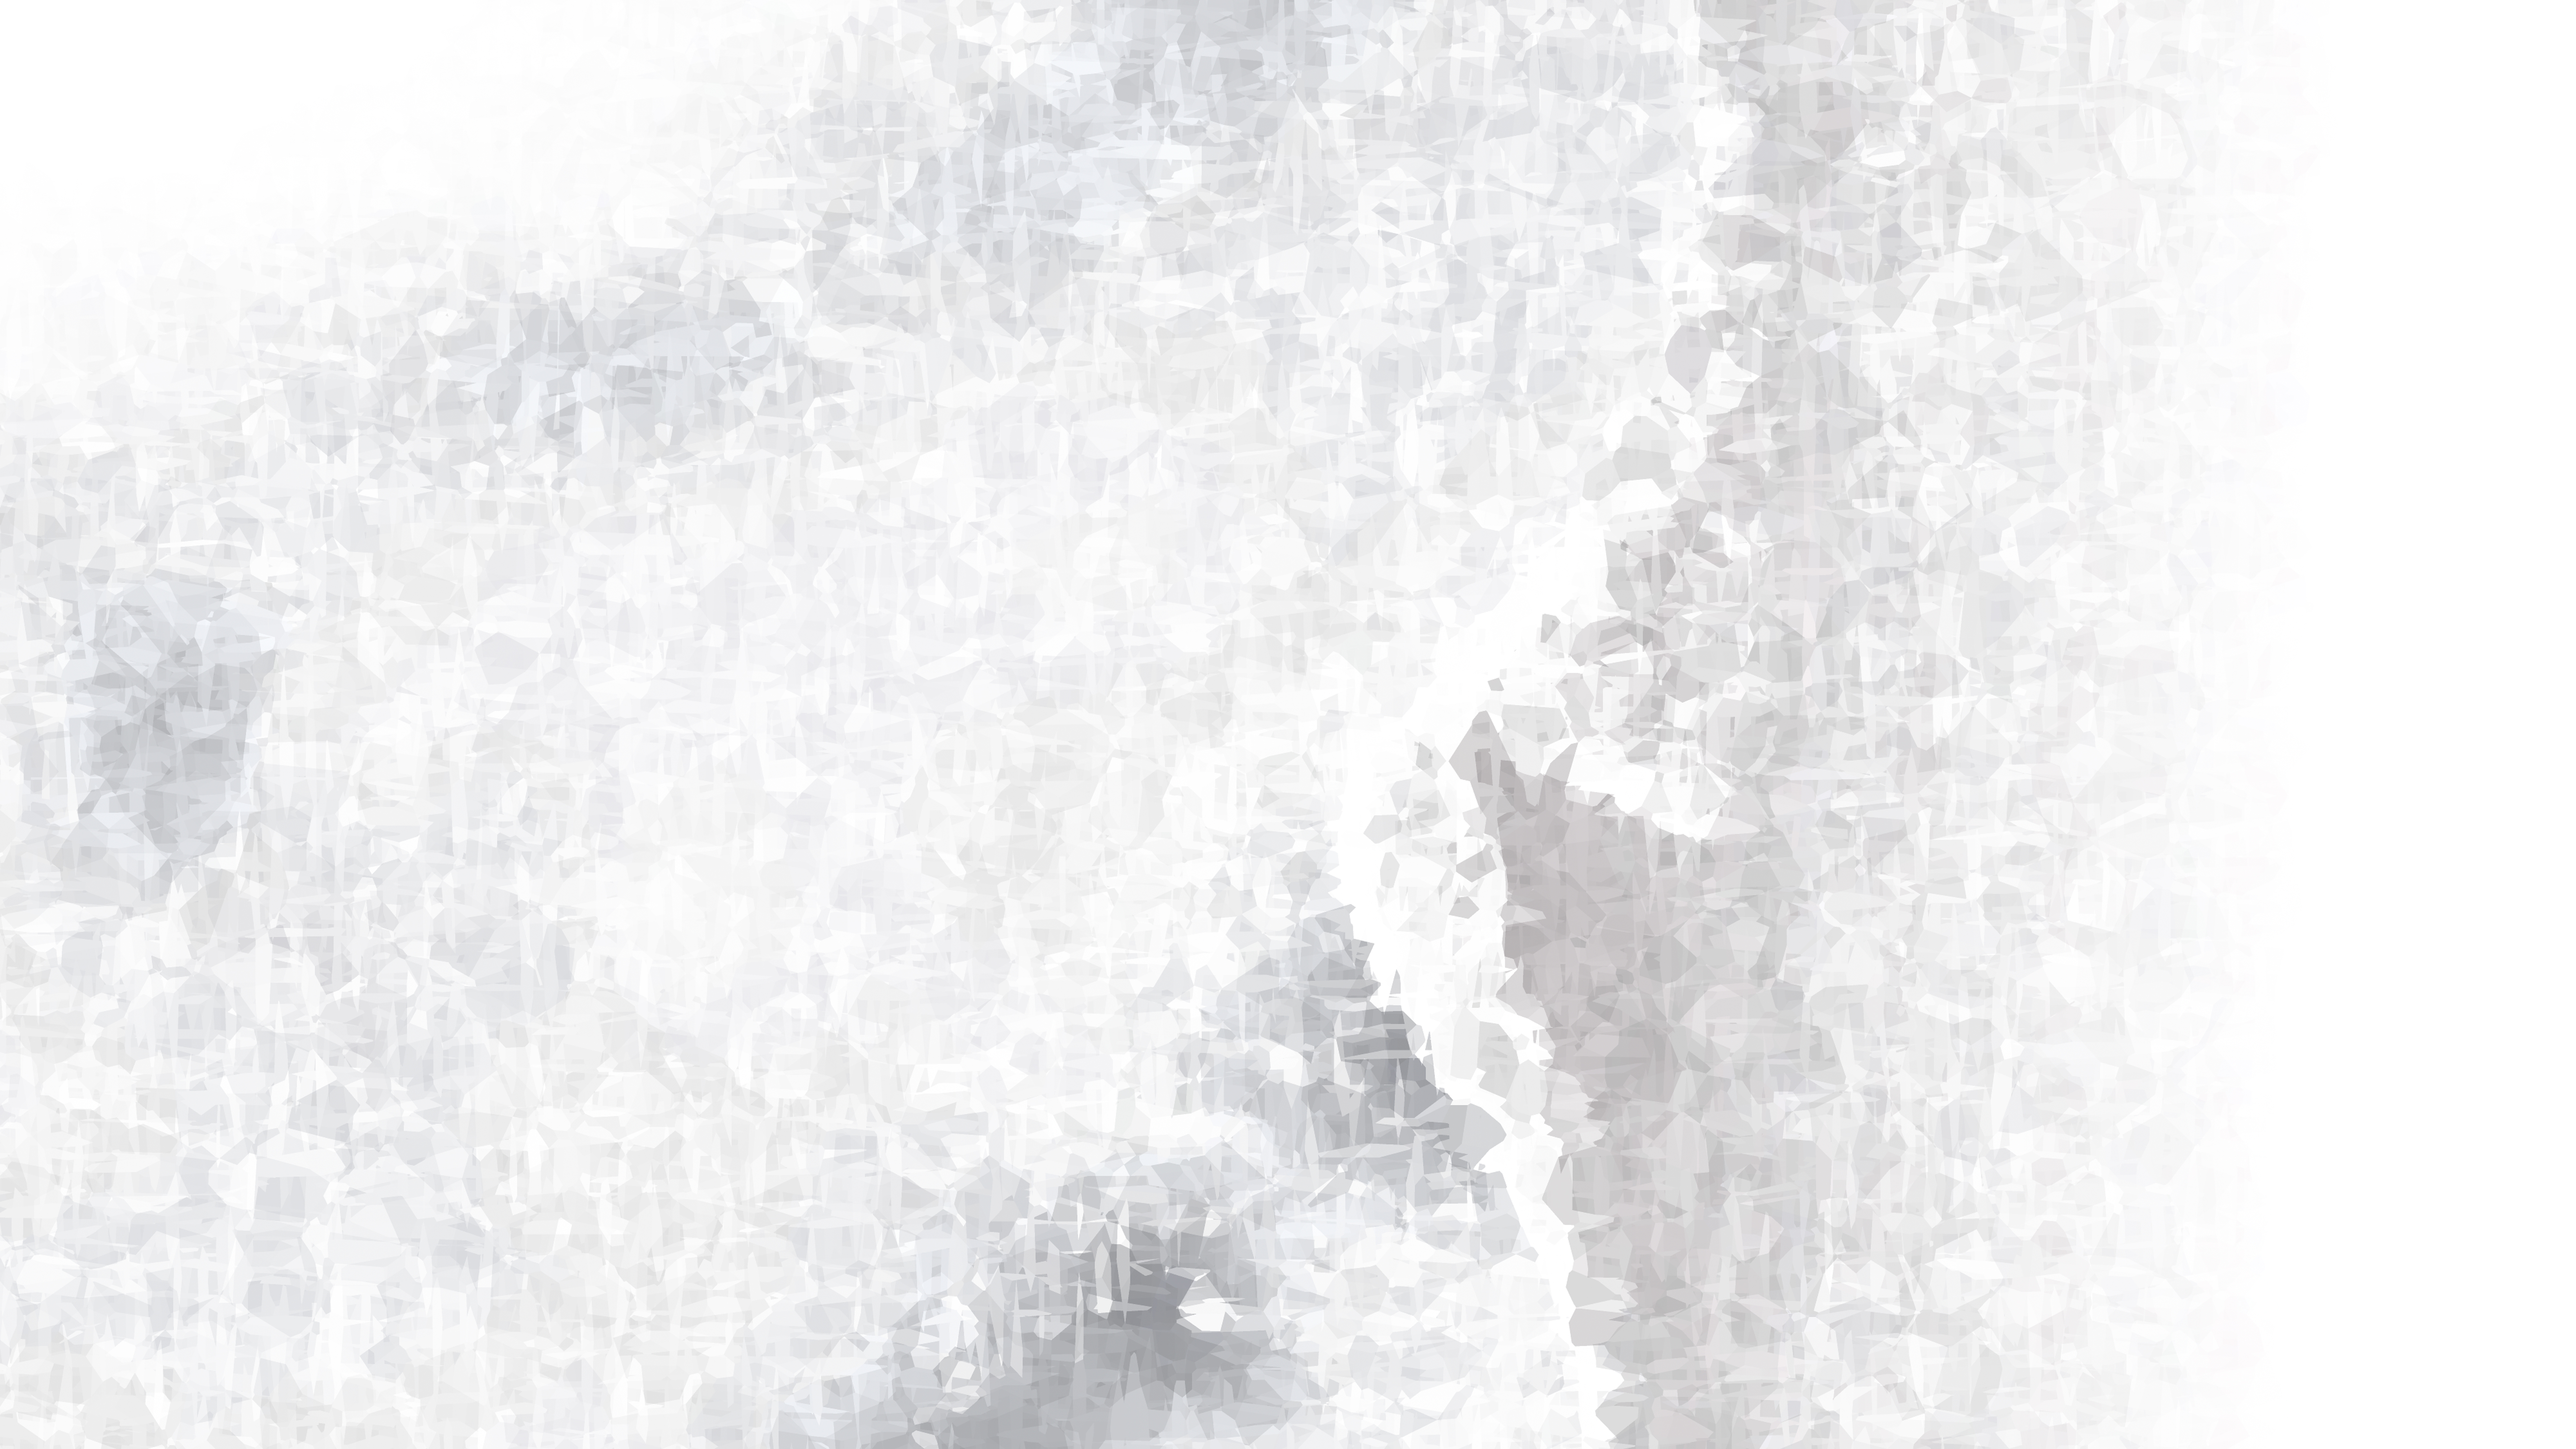 Grey and White Grunge Watercolour Background